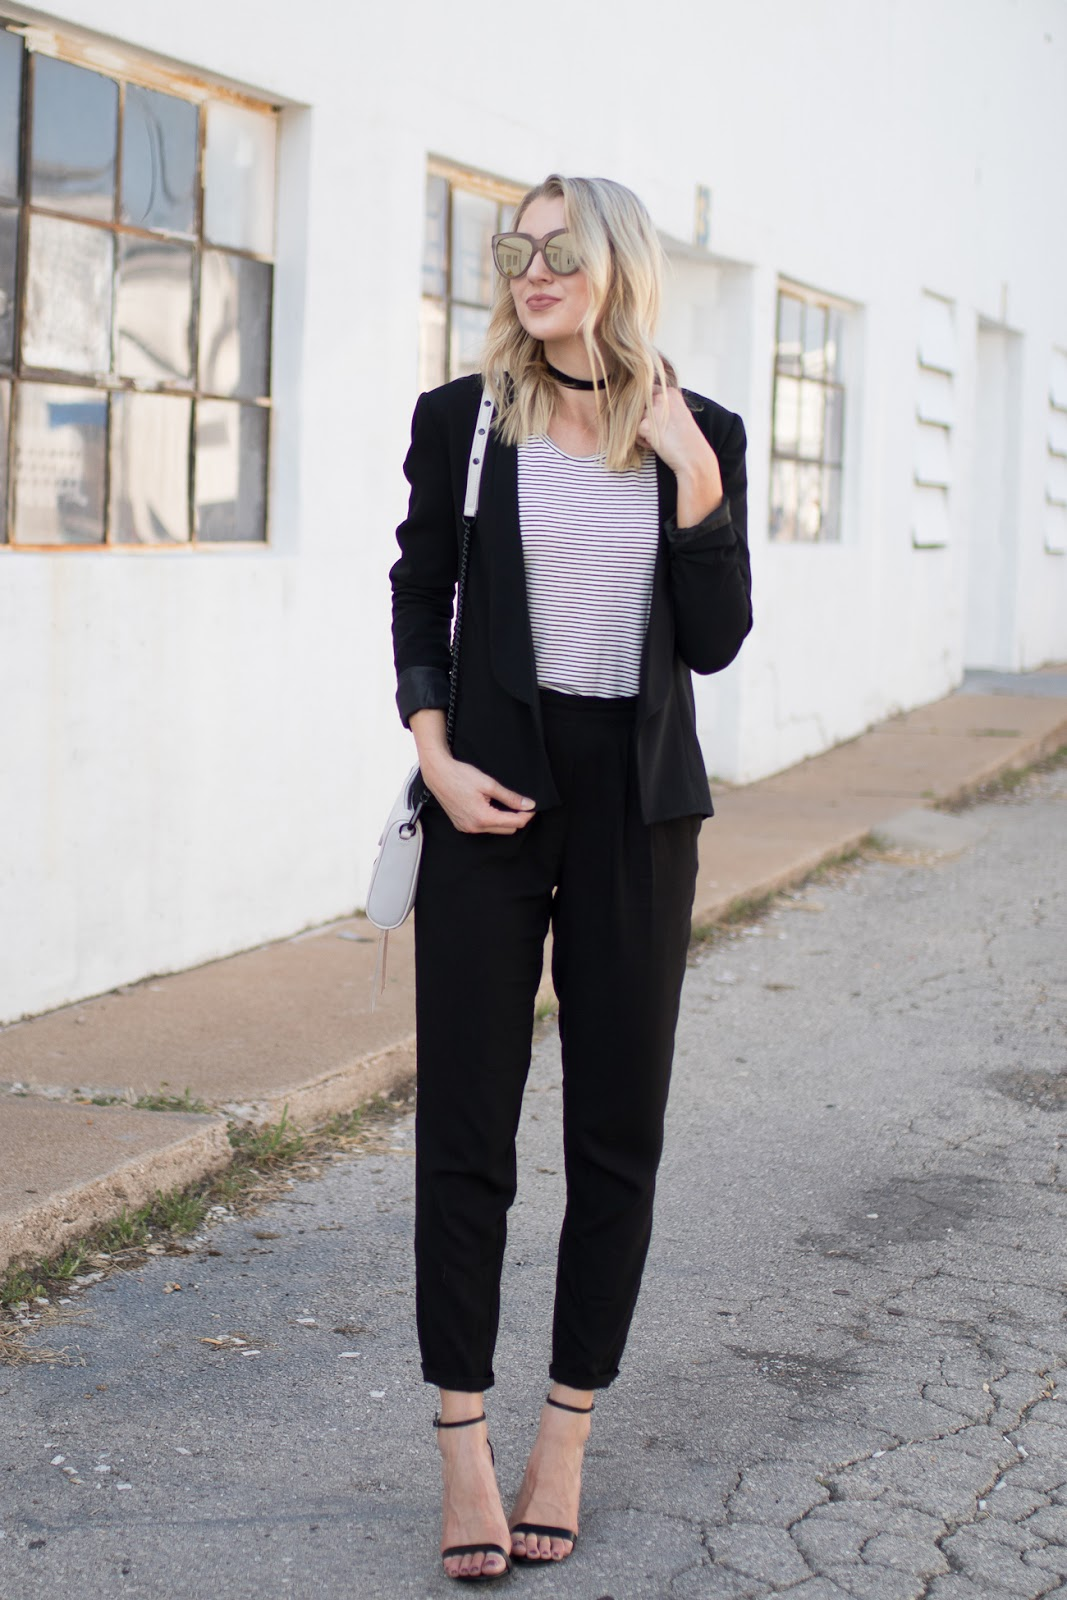 Black & white work outfit